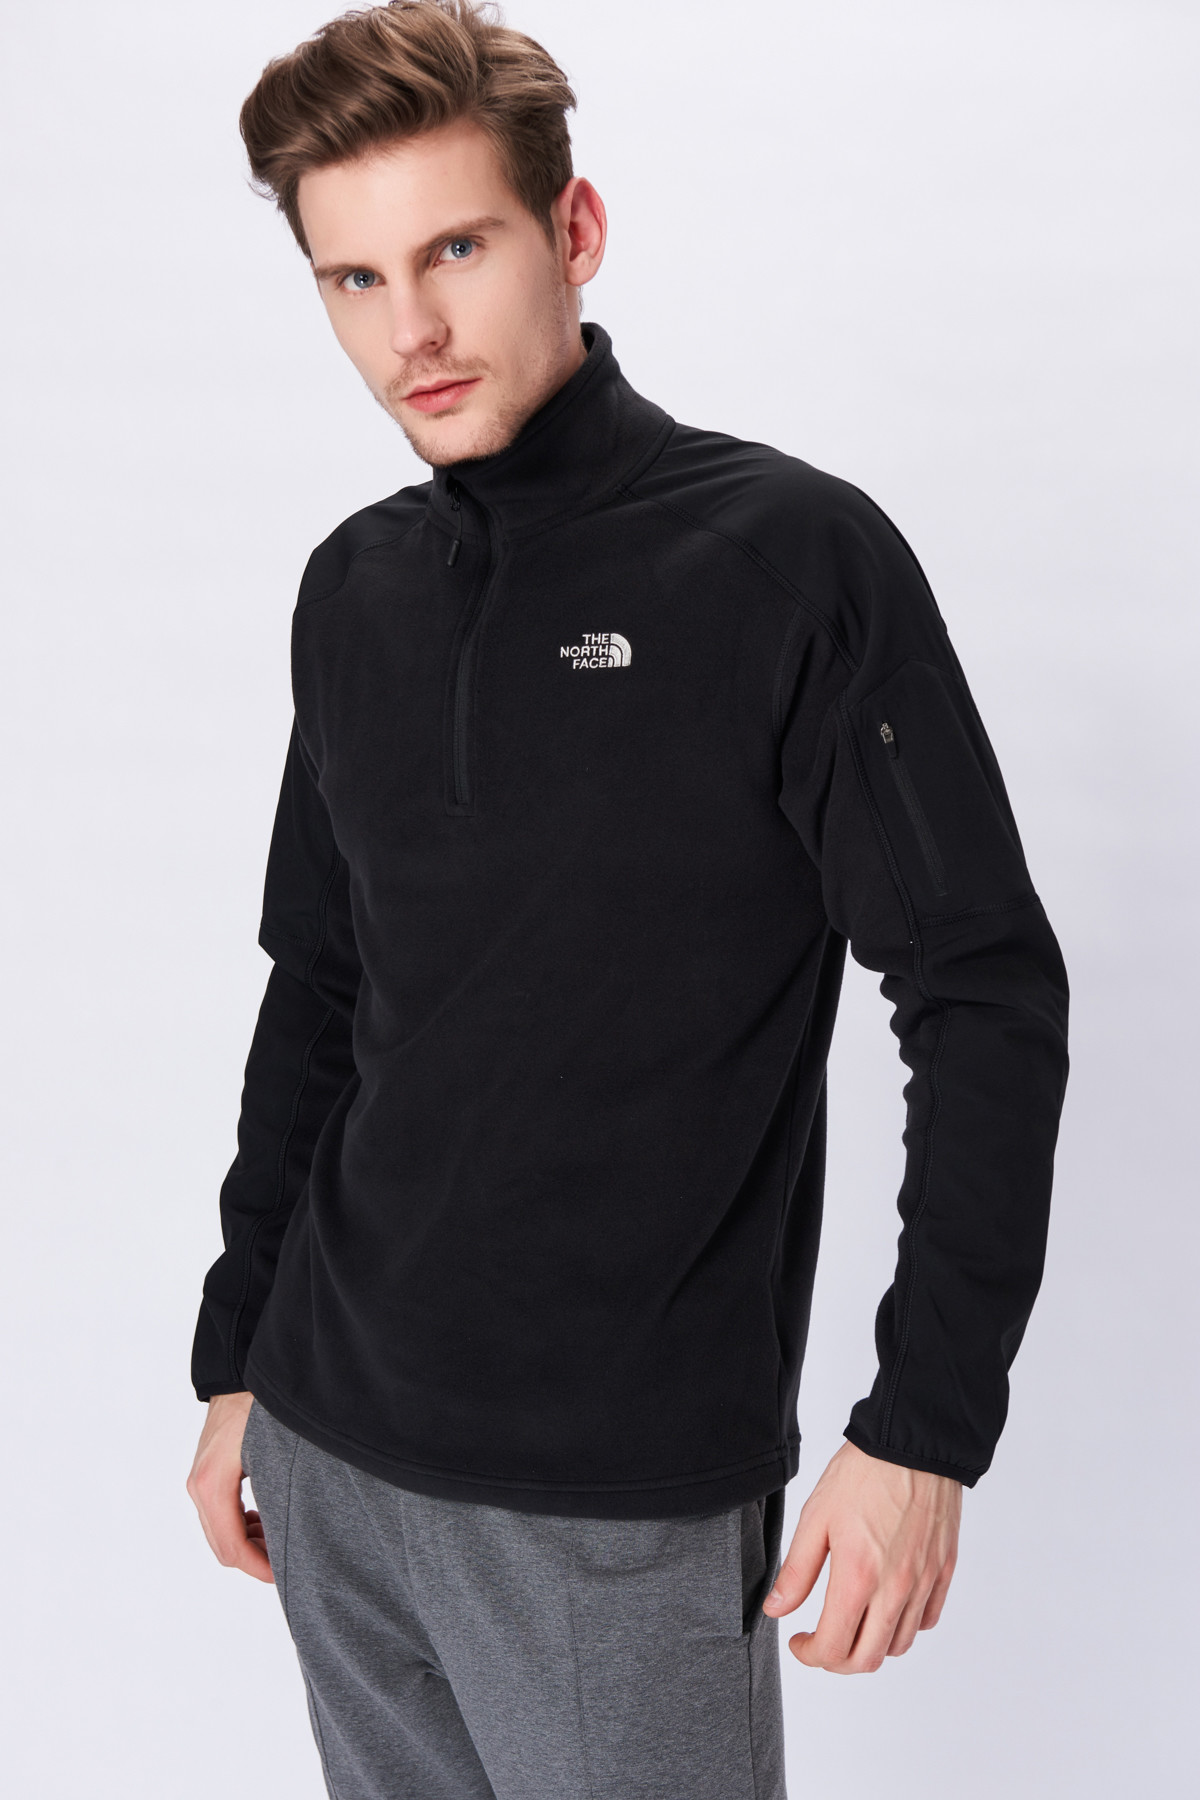 The North Face The North Face 100 Glacier Delta Polar Sweat T92uapjk3 – 287.4 TL